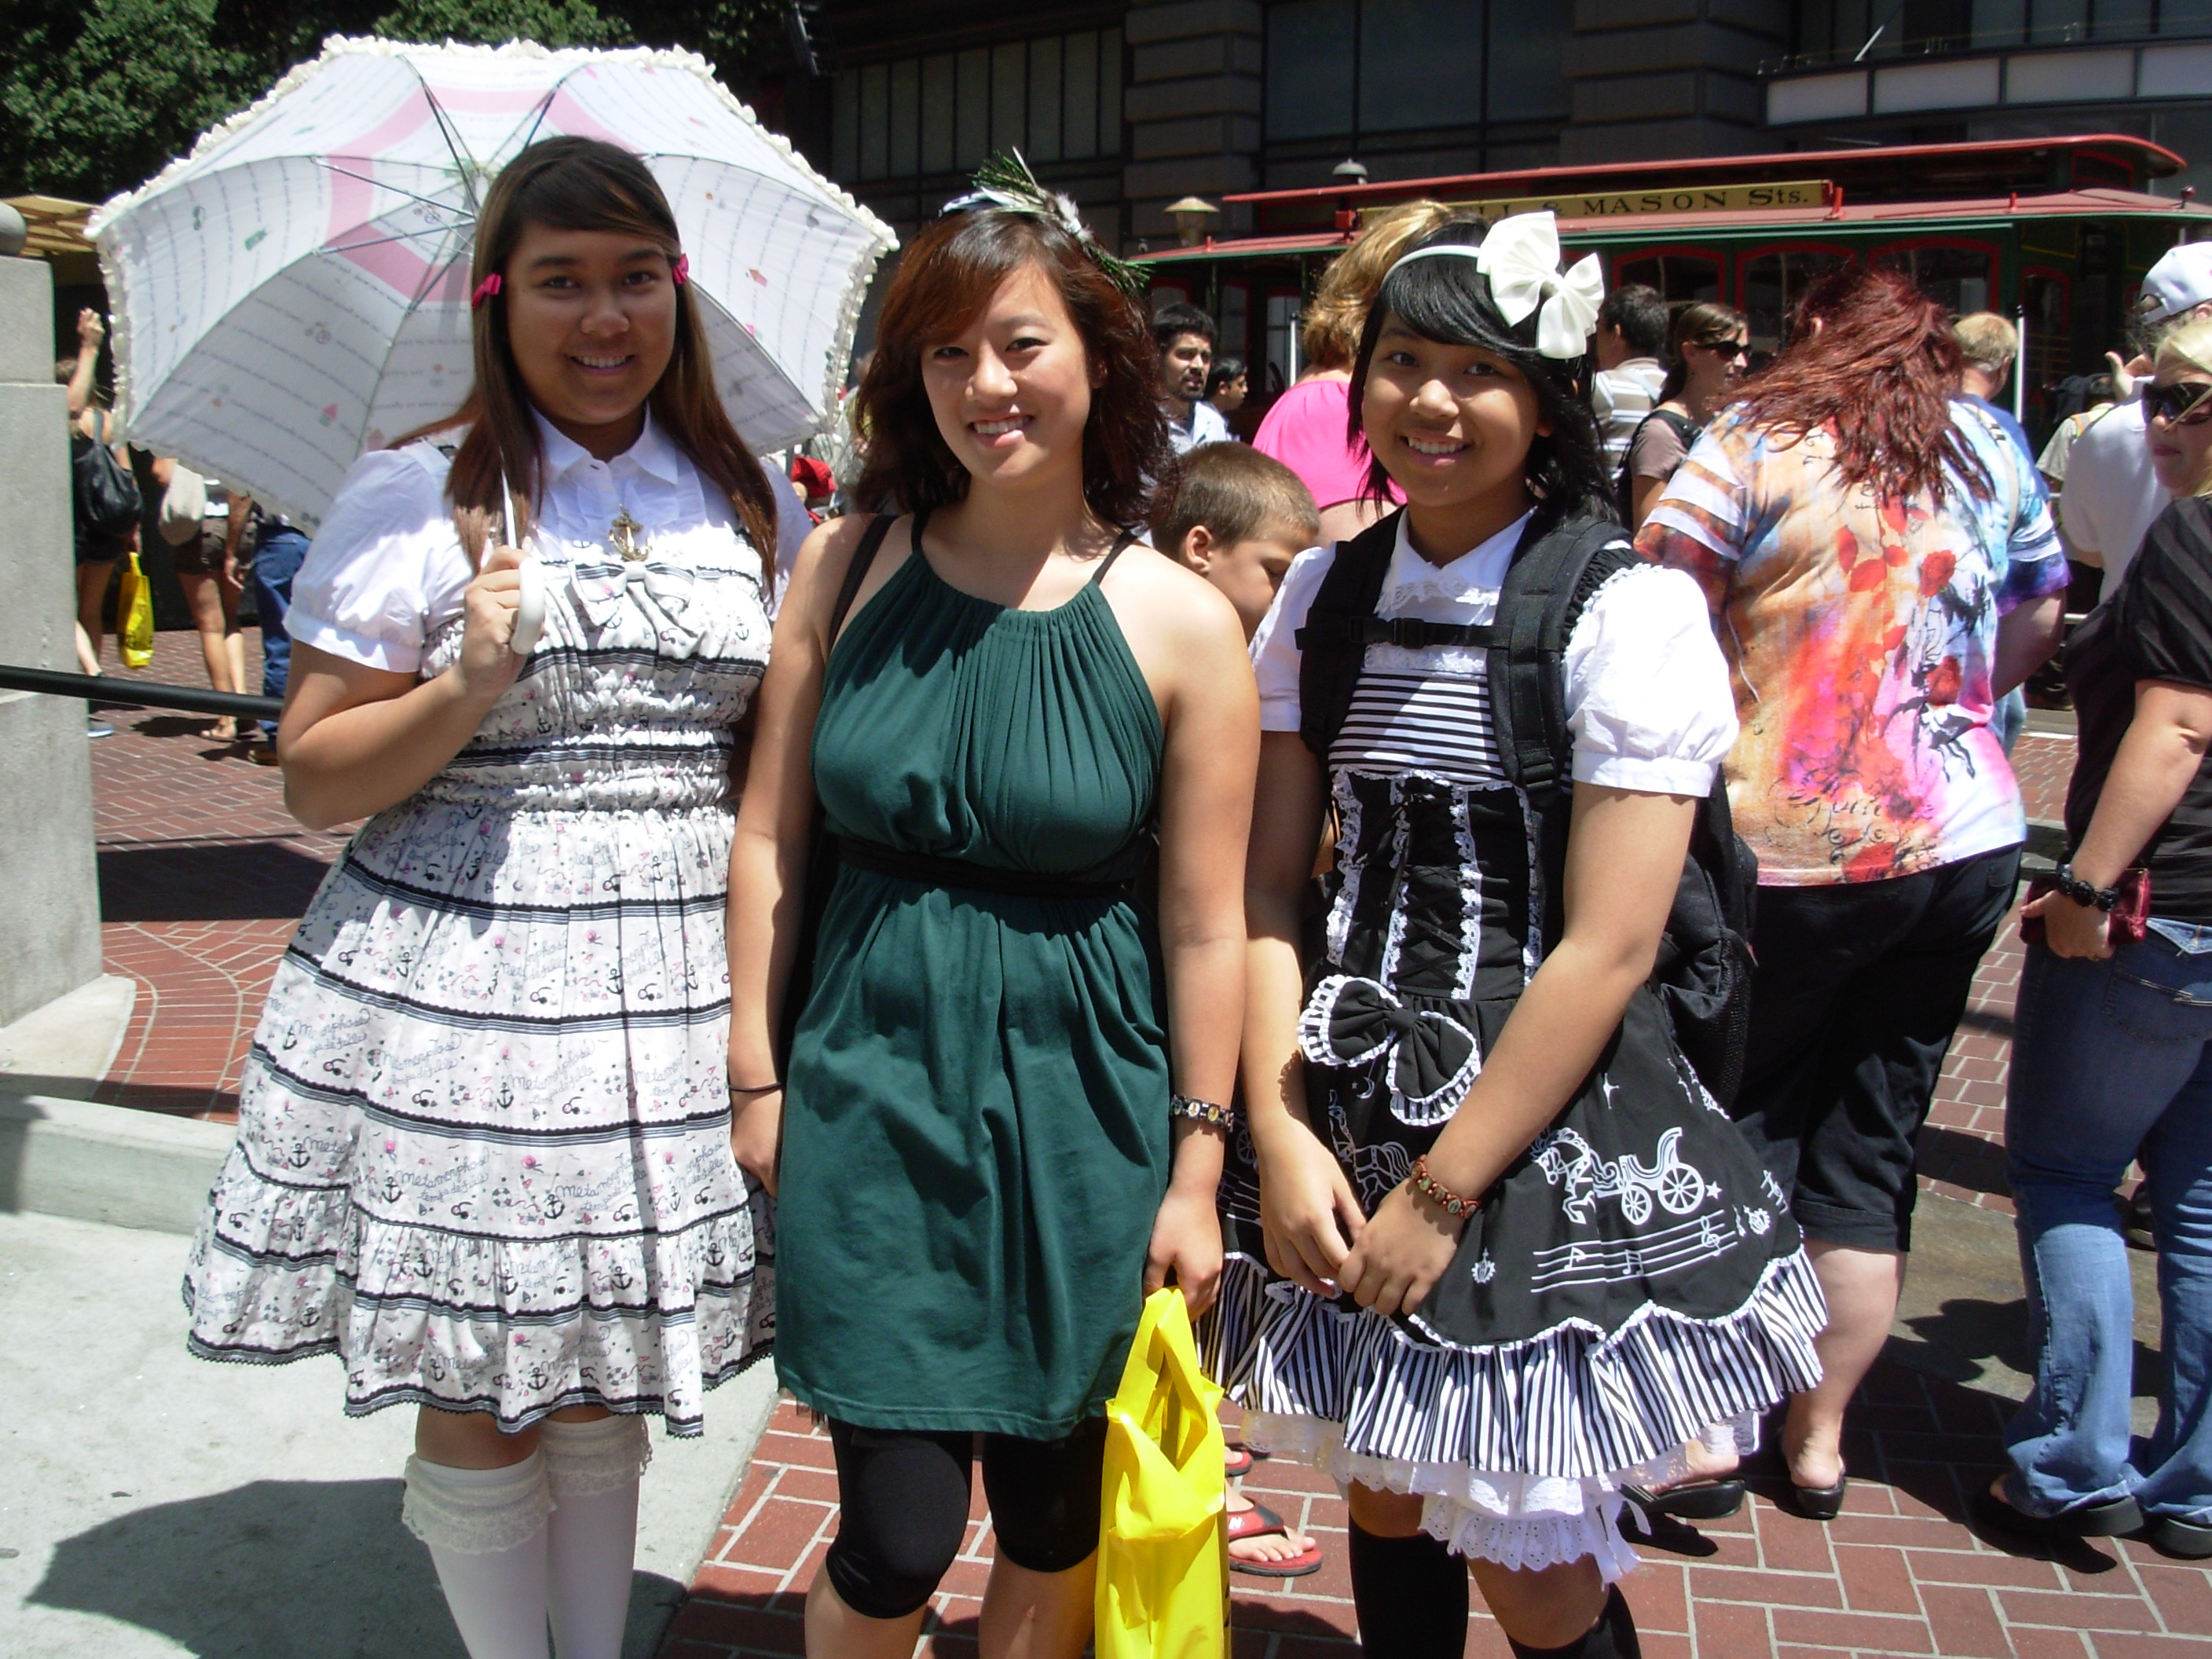 Harajuku Girls Spotted in San Francisco: Shopping in Union